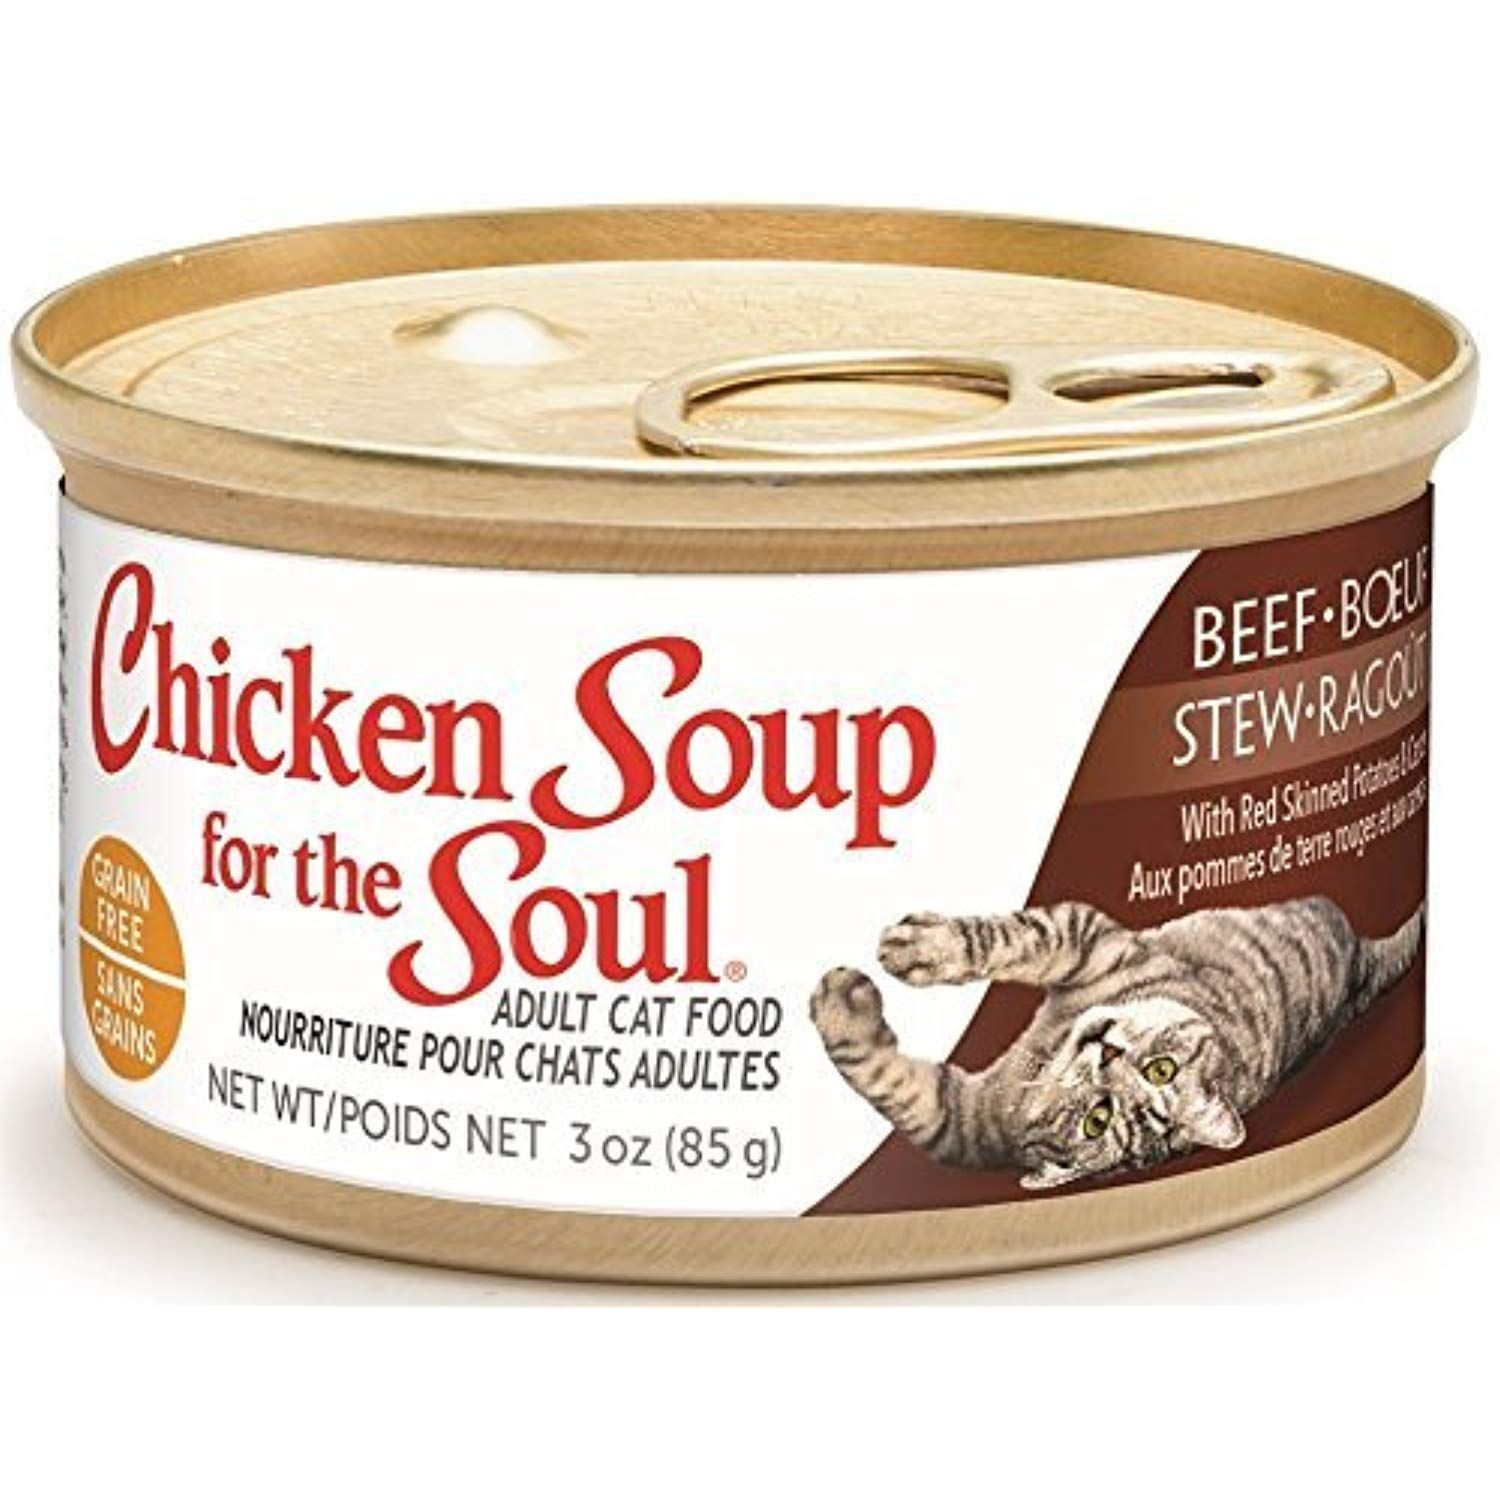 Chicken Soup For The Soul Grain Free Beef Stew with Red